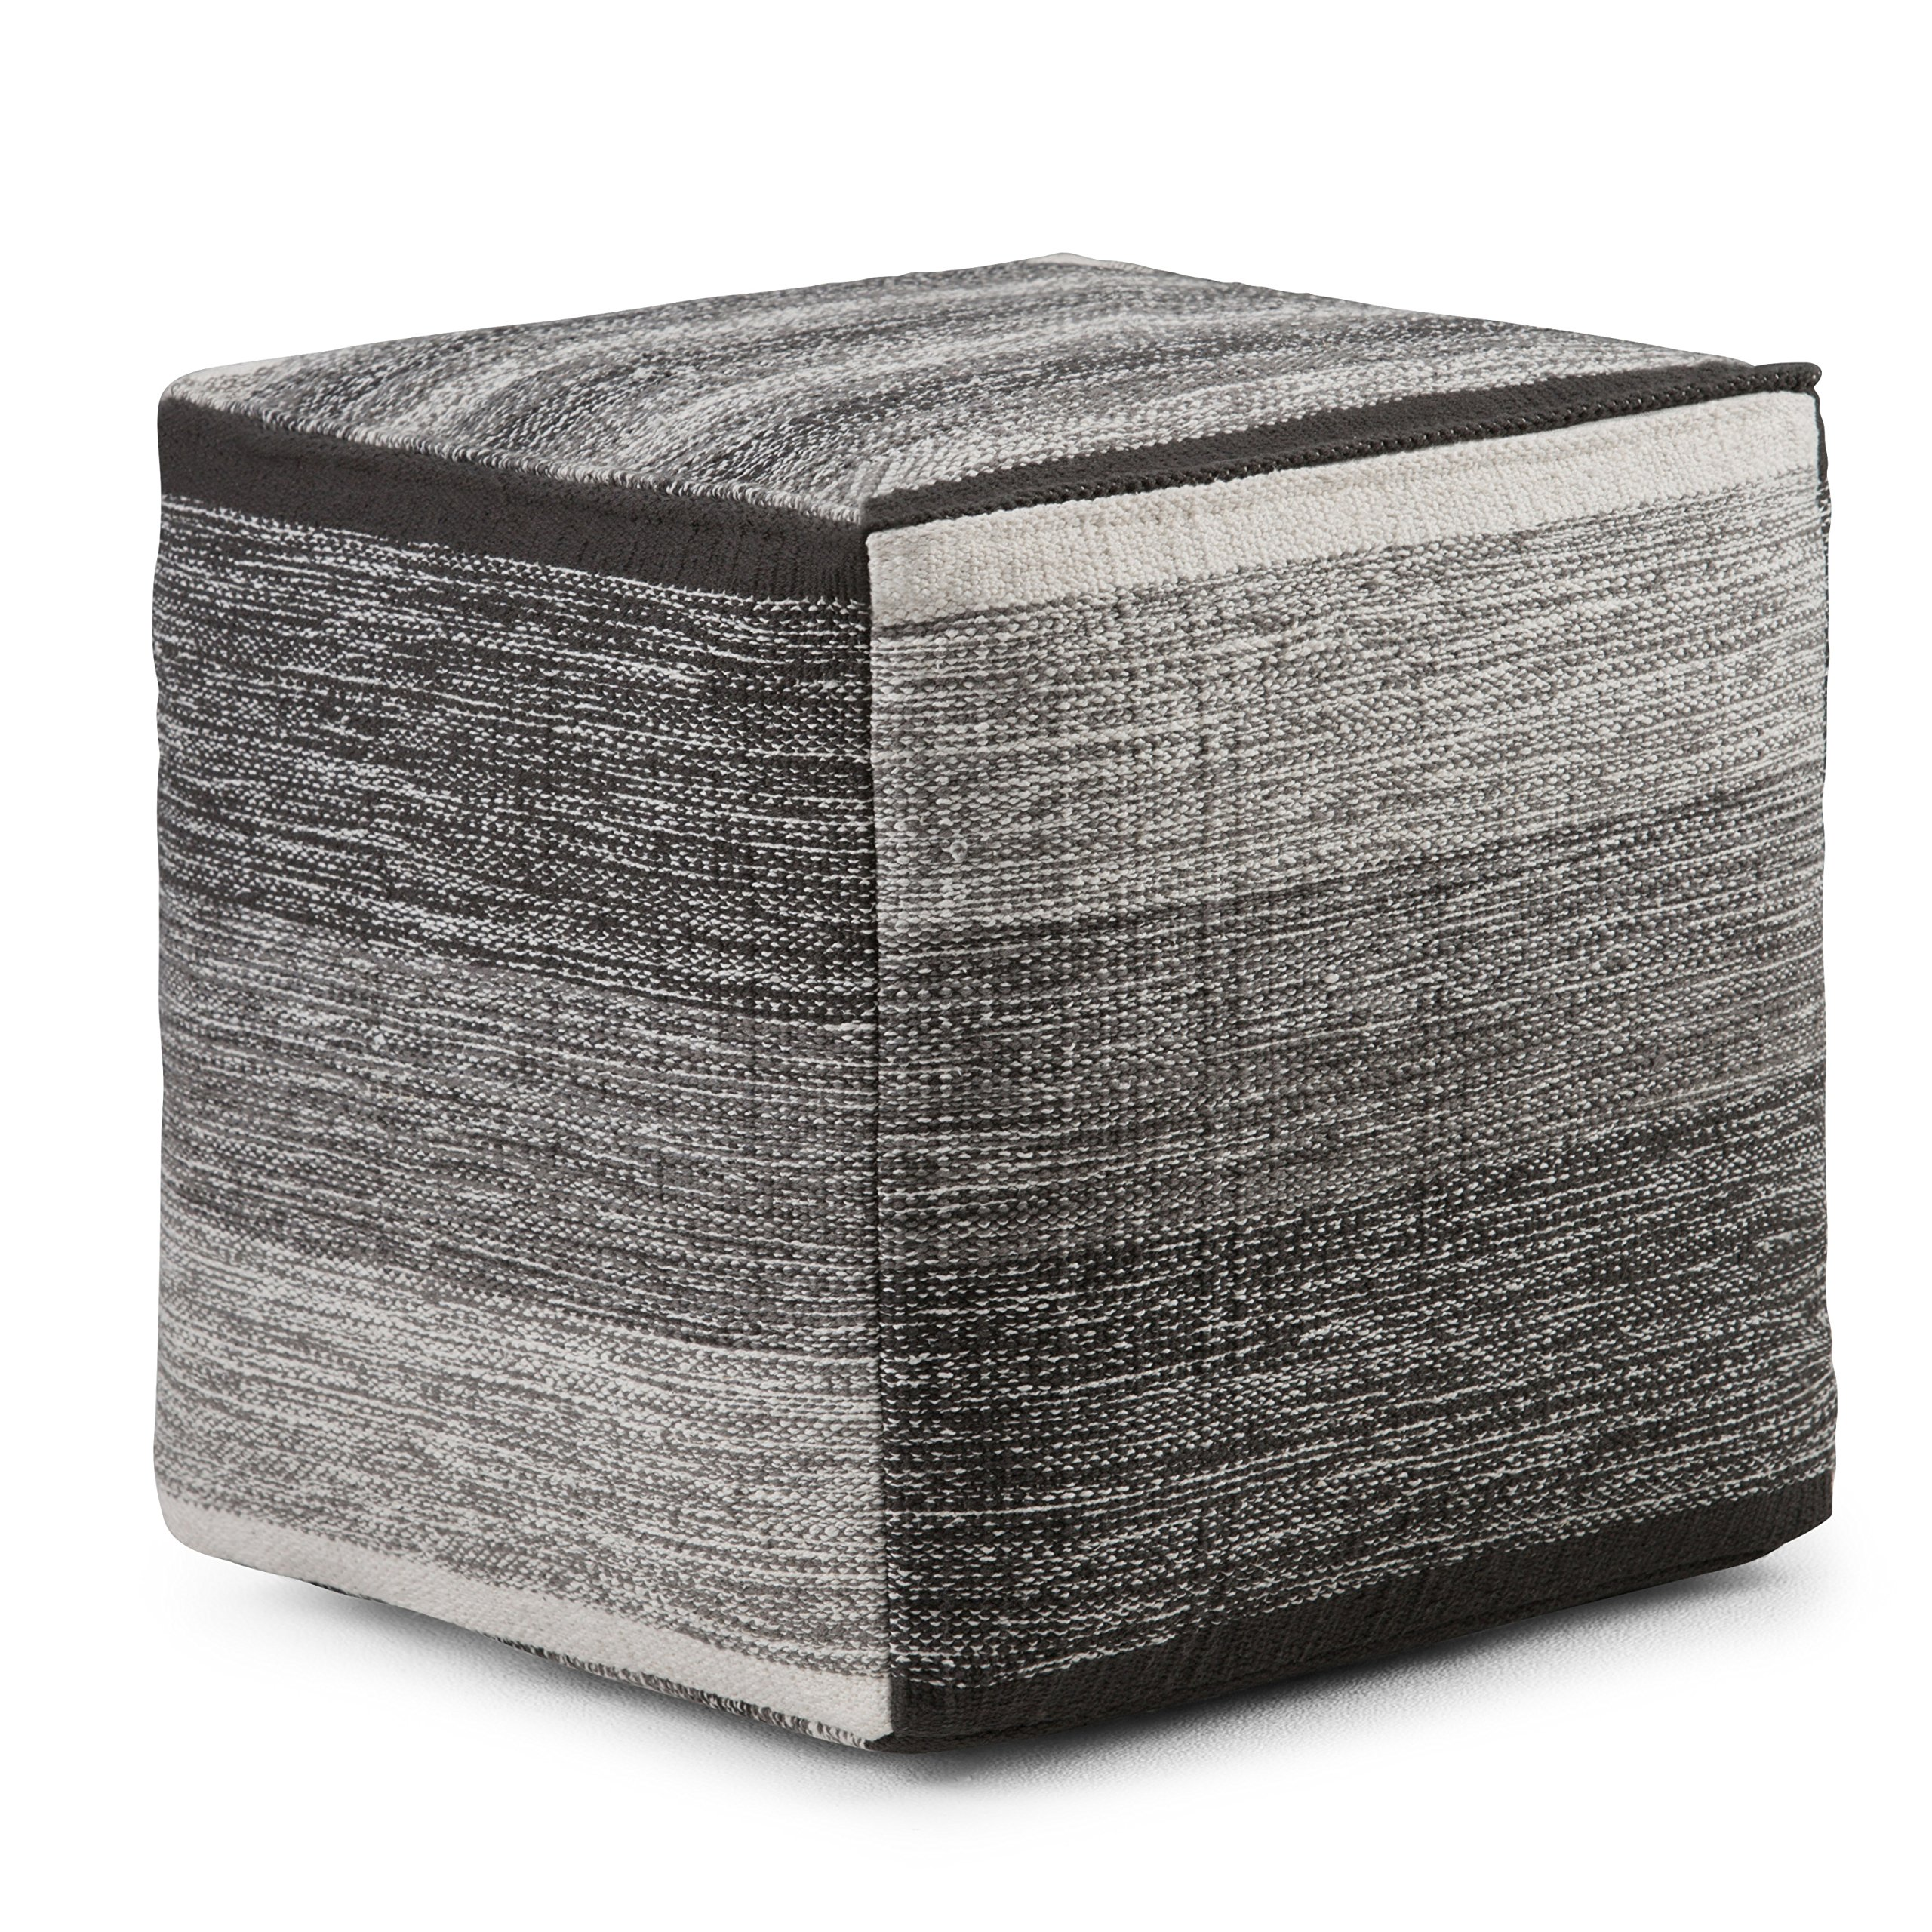 Simpli Home Naya Cube Pouf, Patterned Grey Melange